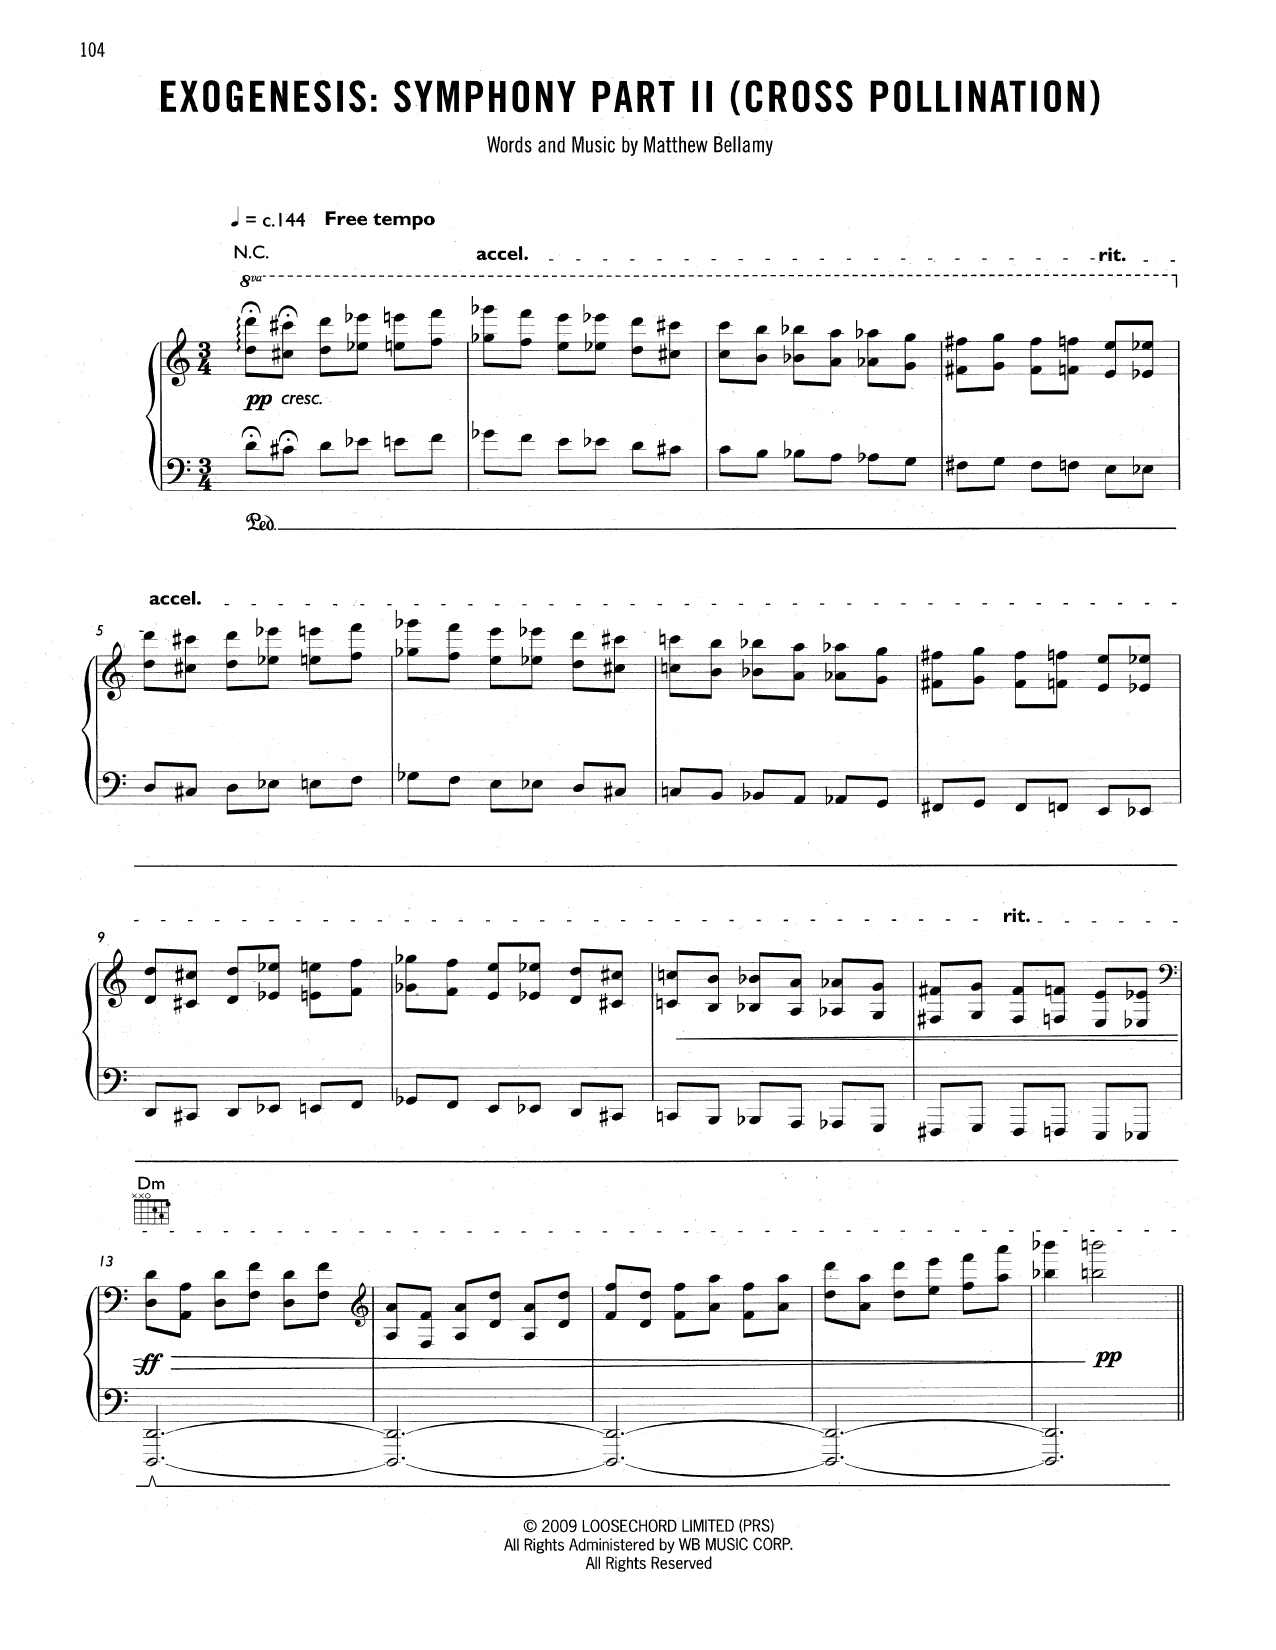 Exogenesis: Symphony Part II (Cross Pollination) Sheet Music